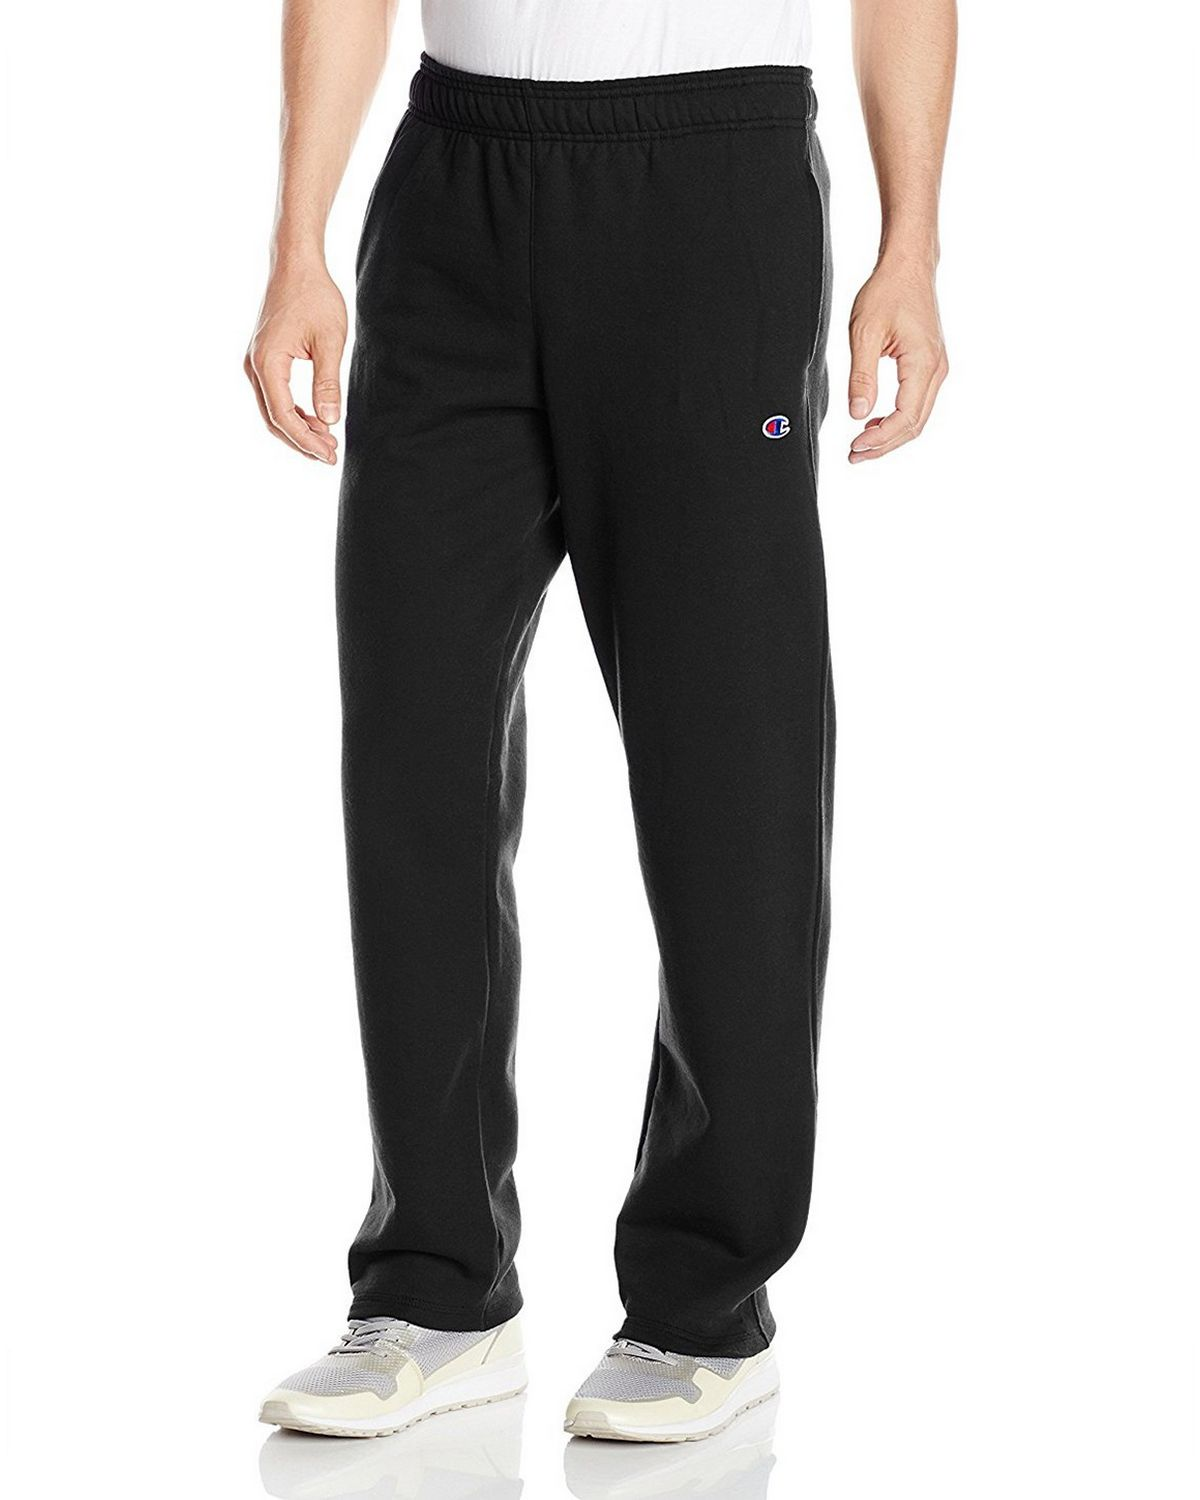 Champion P0893 Mens Fleece Open Bottom Pants - Oxford Grey - M P0893